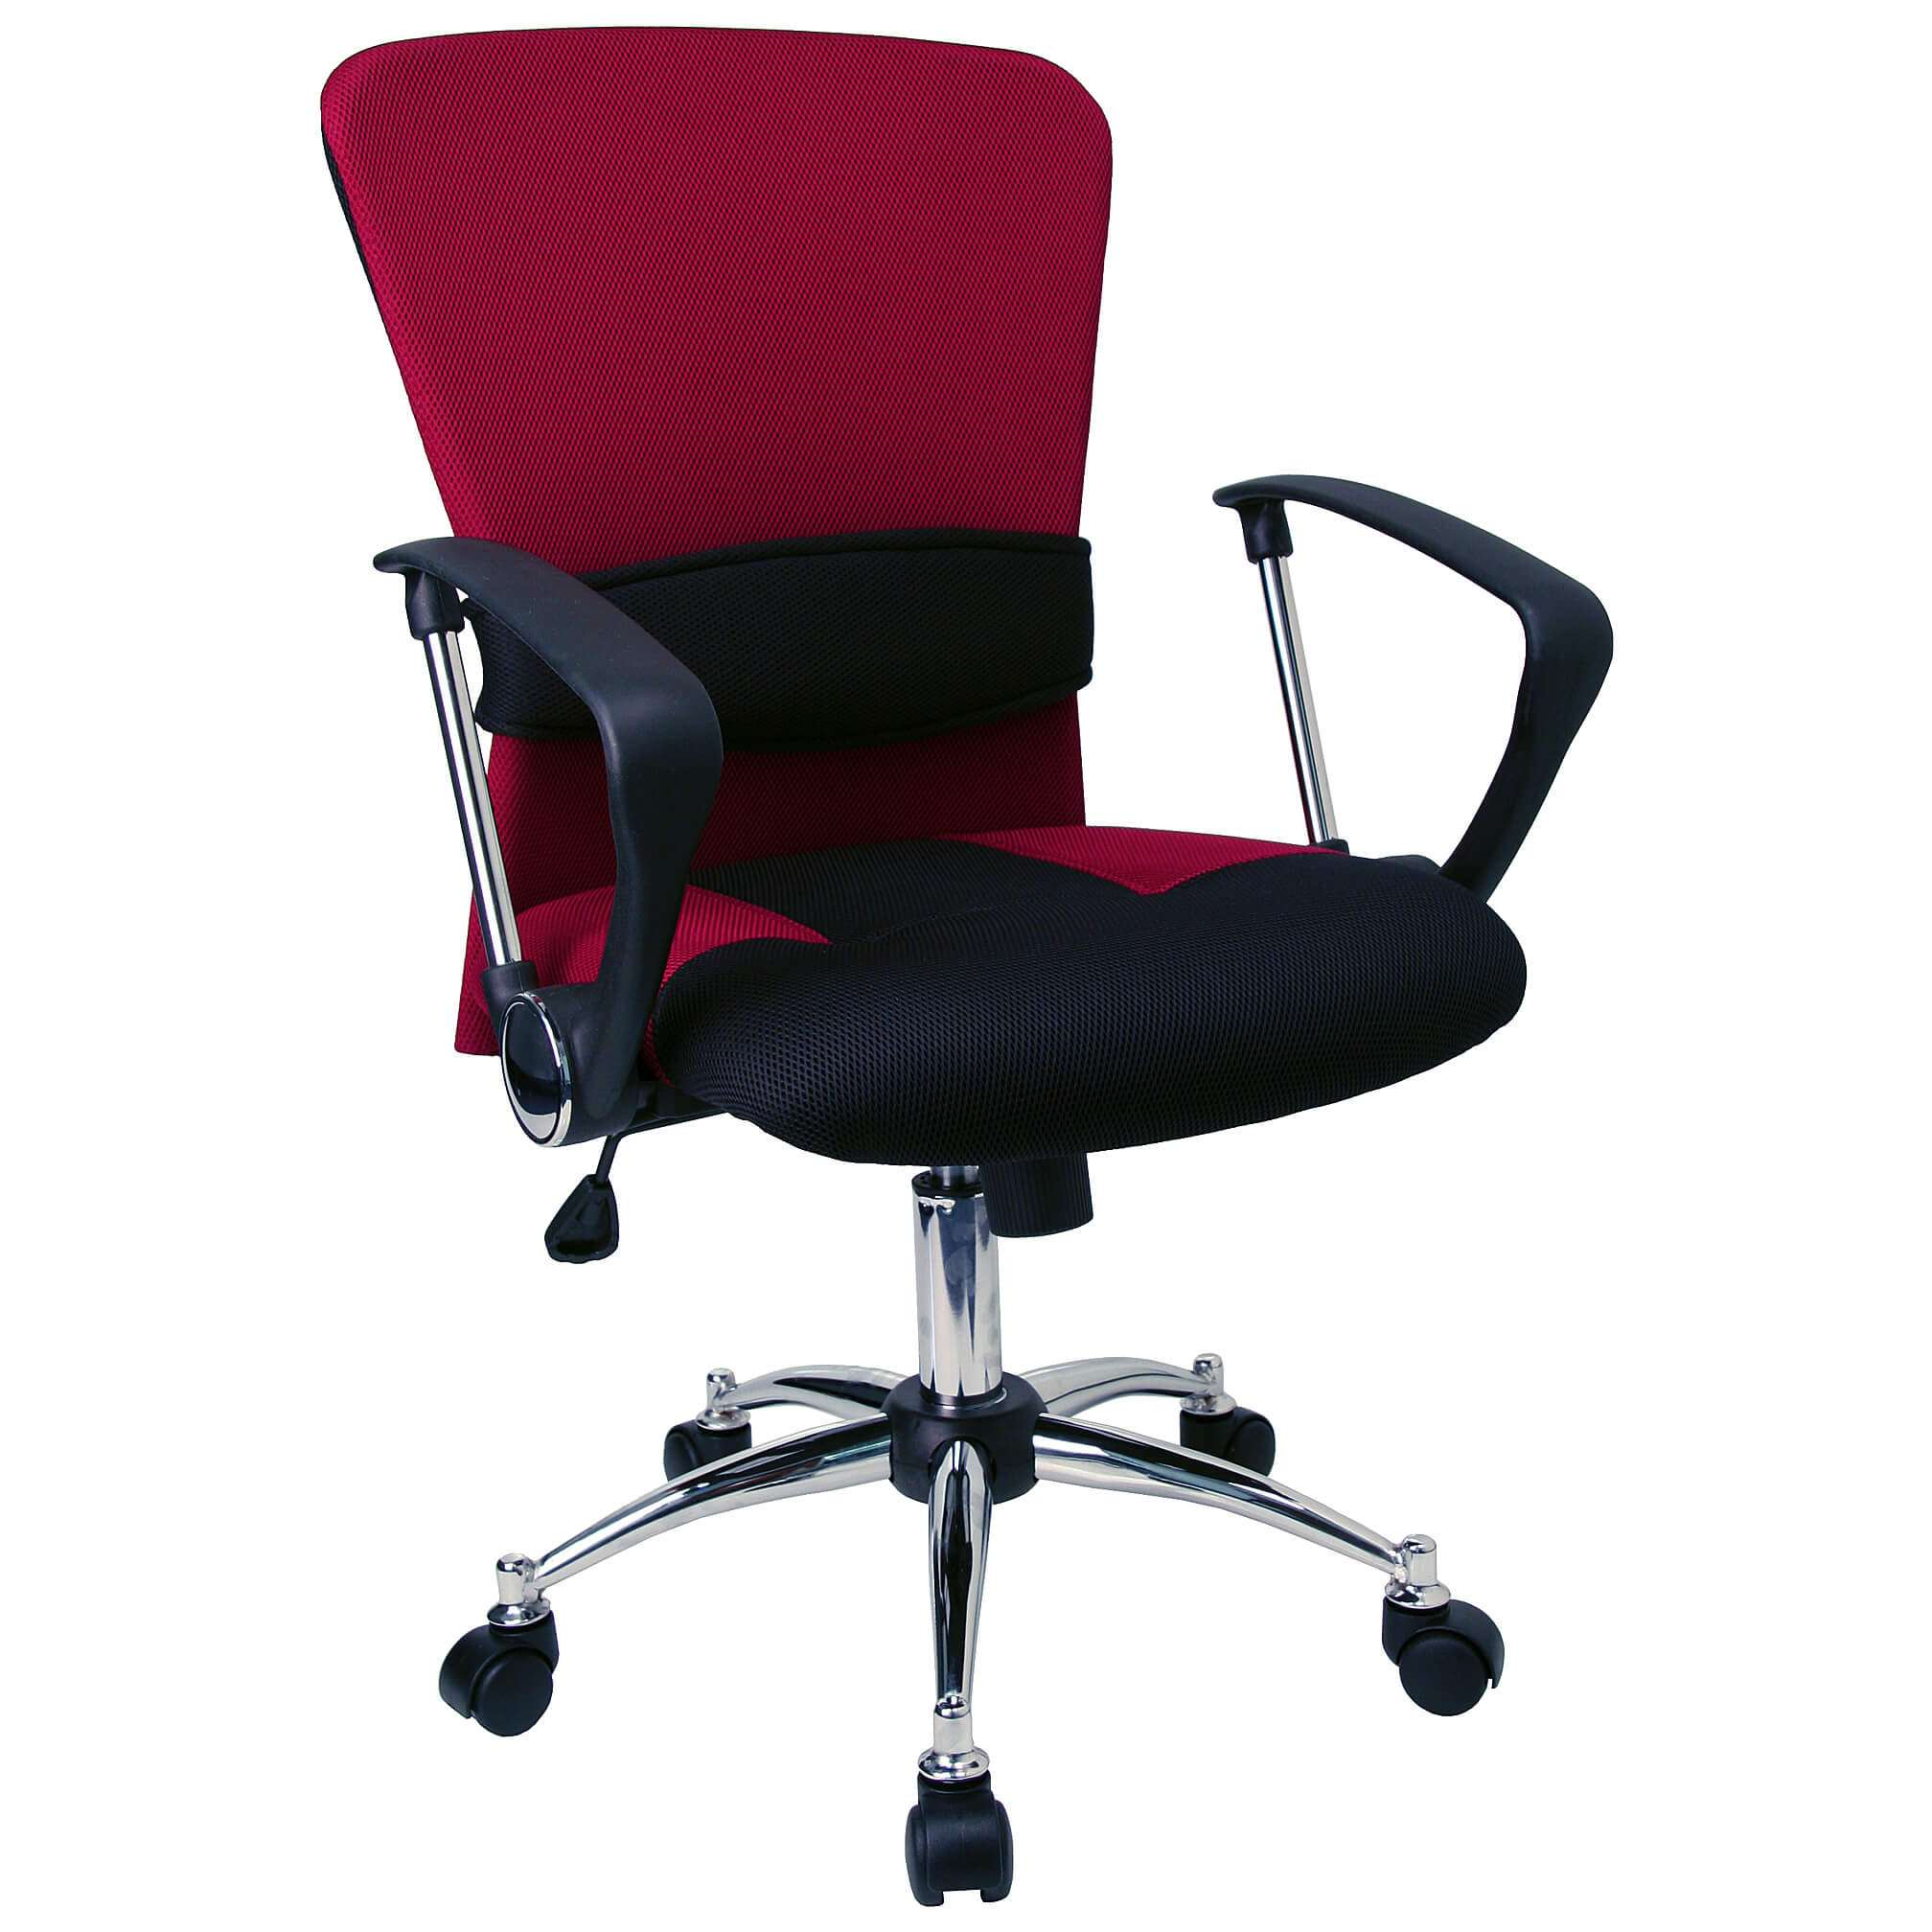 Cool desk chairs CUB LF W23 RED GG FLA